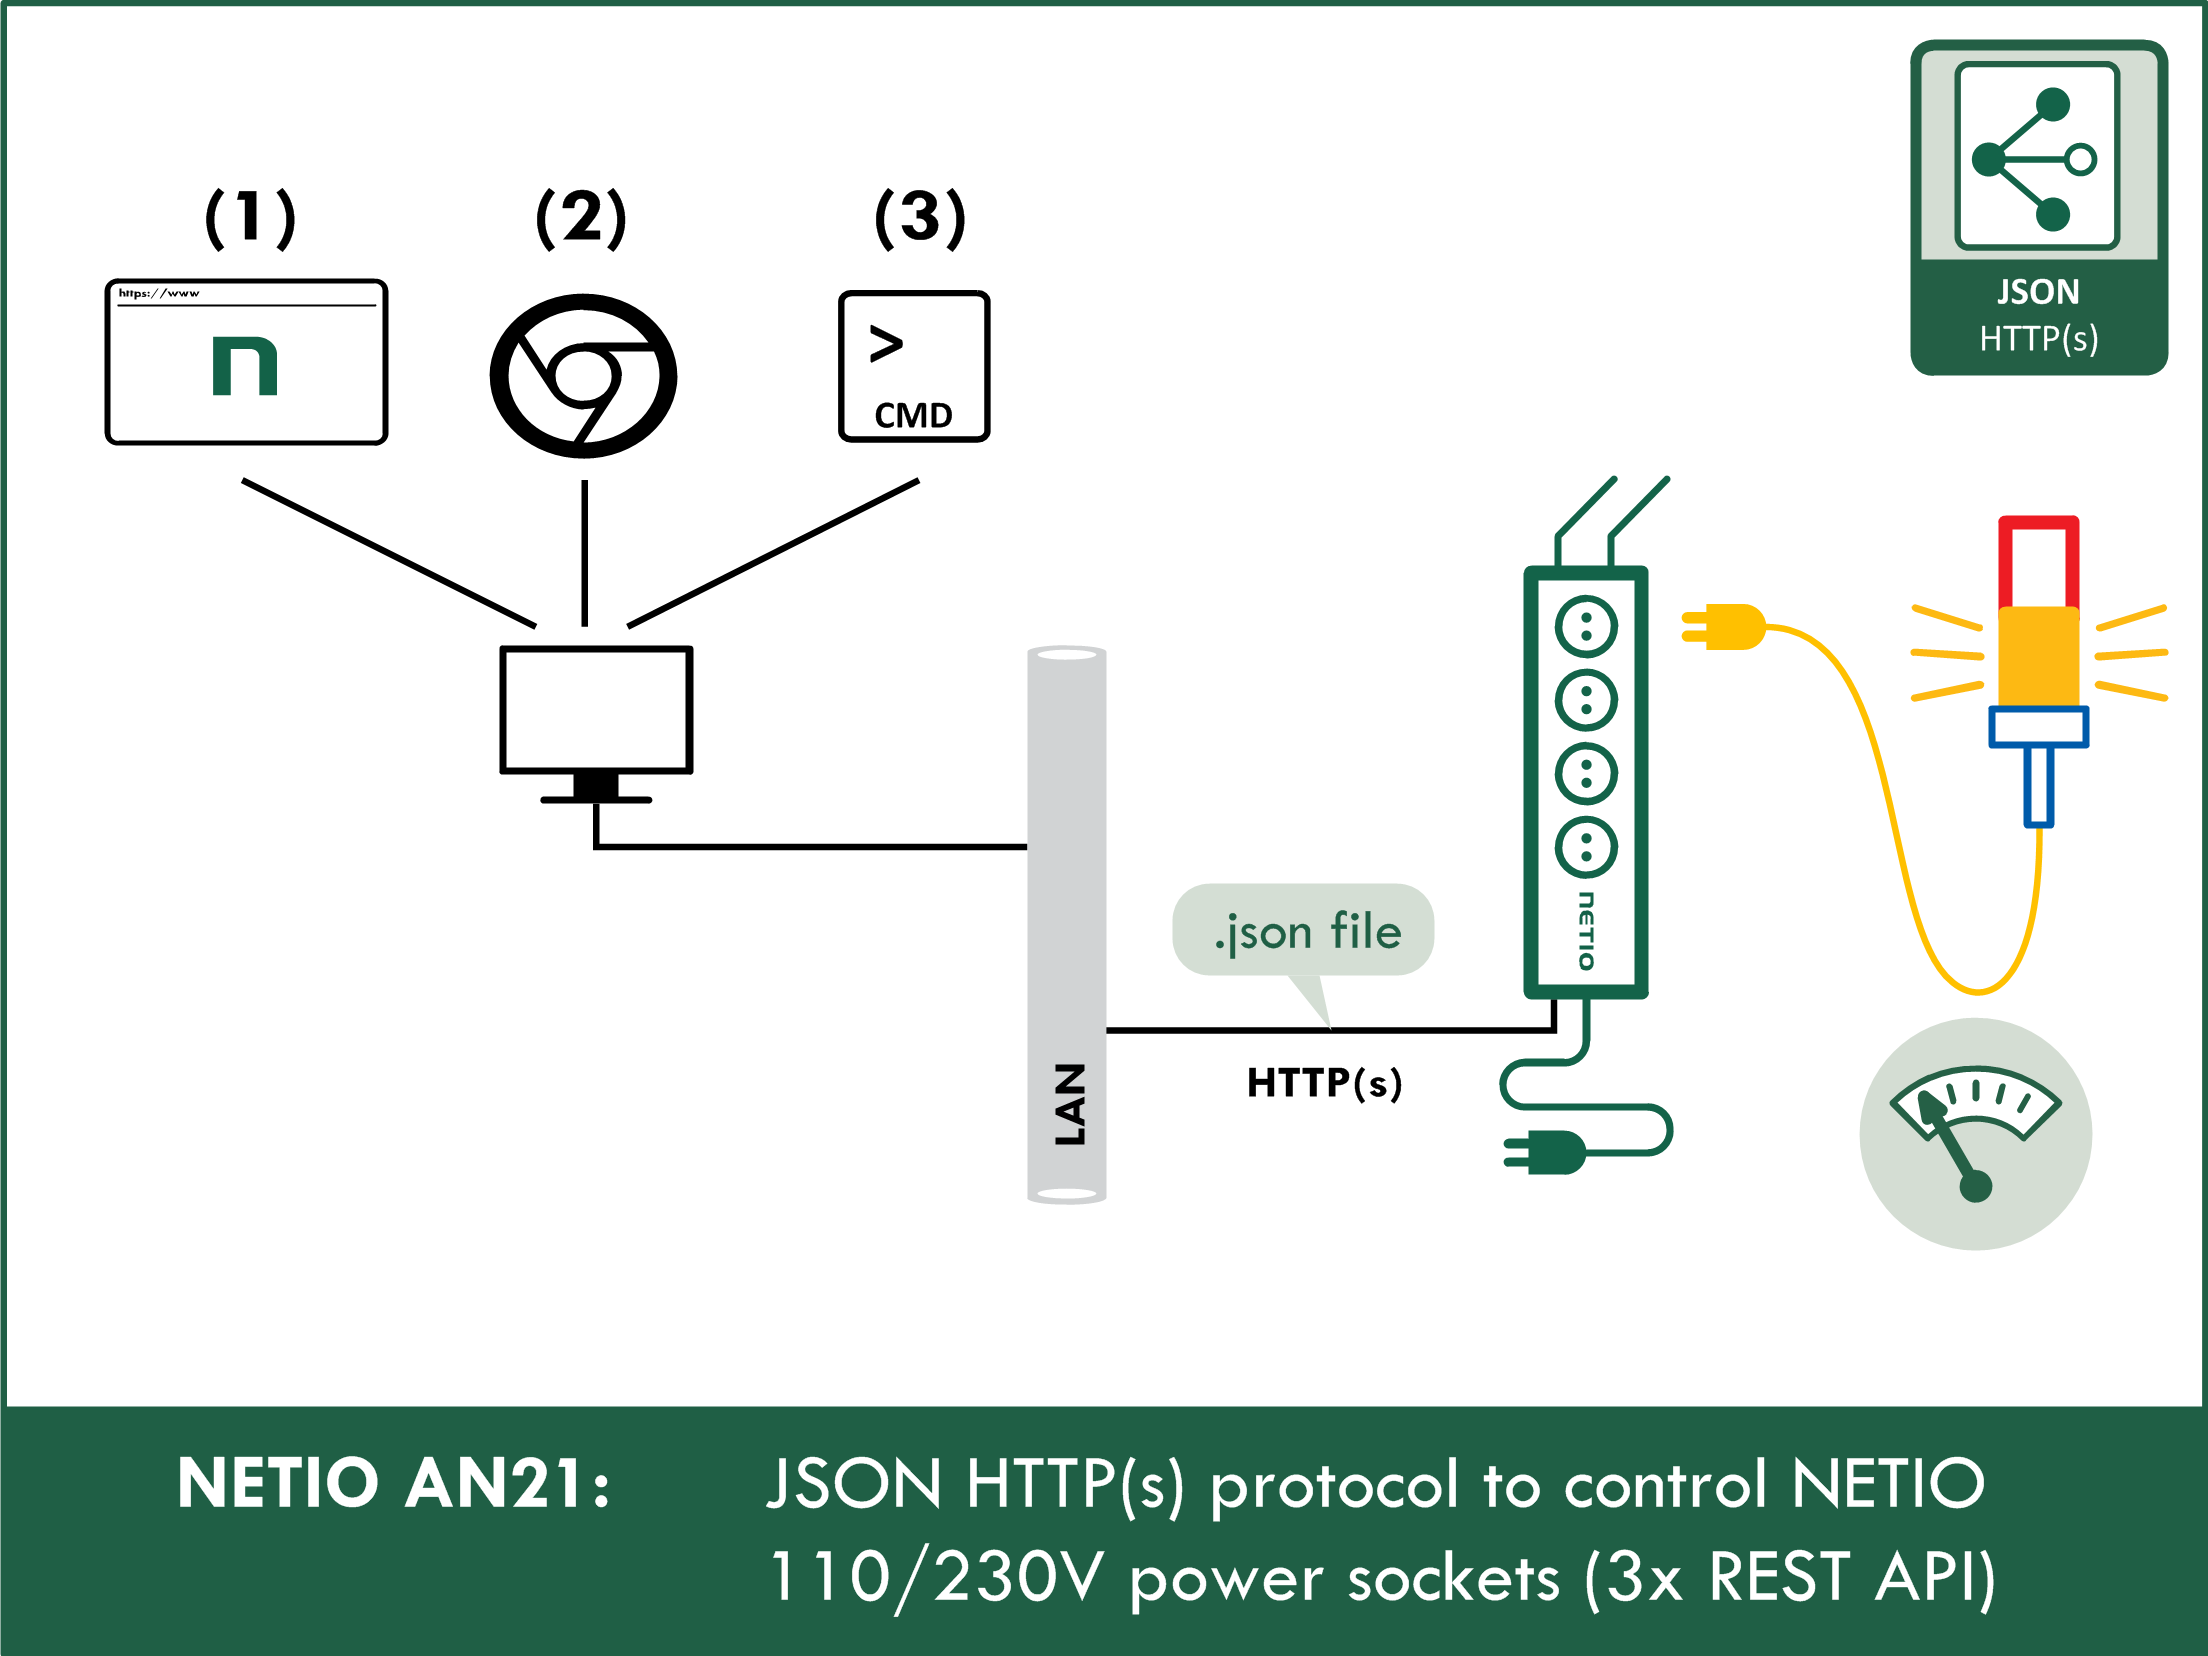 JSONHTTP(S) protocol to control NETIO 110/230V power sockets (3x REST API)